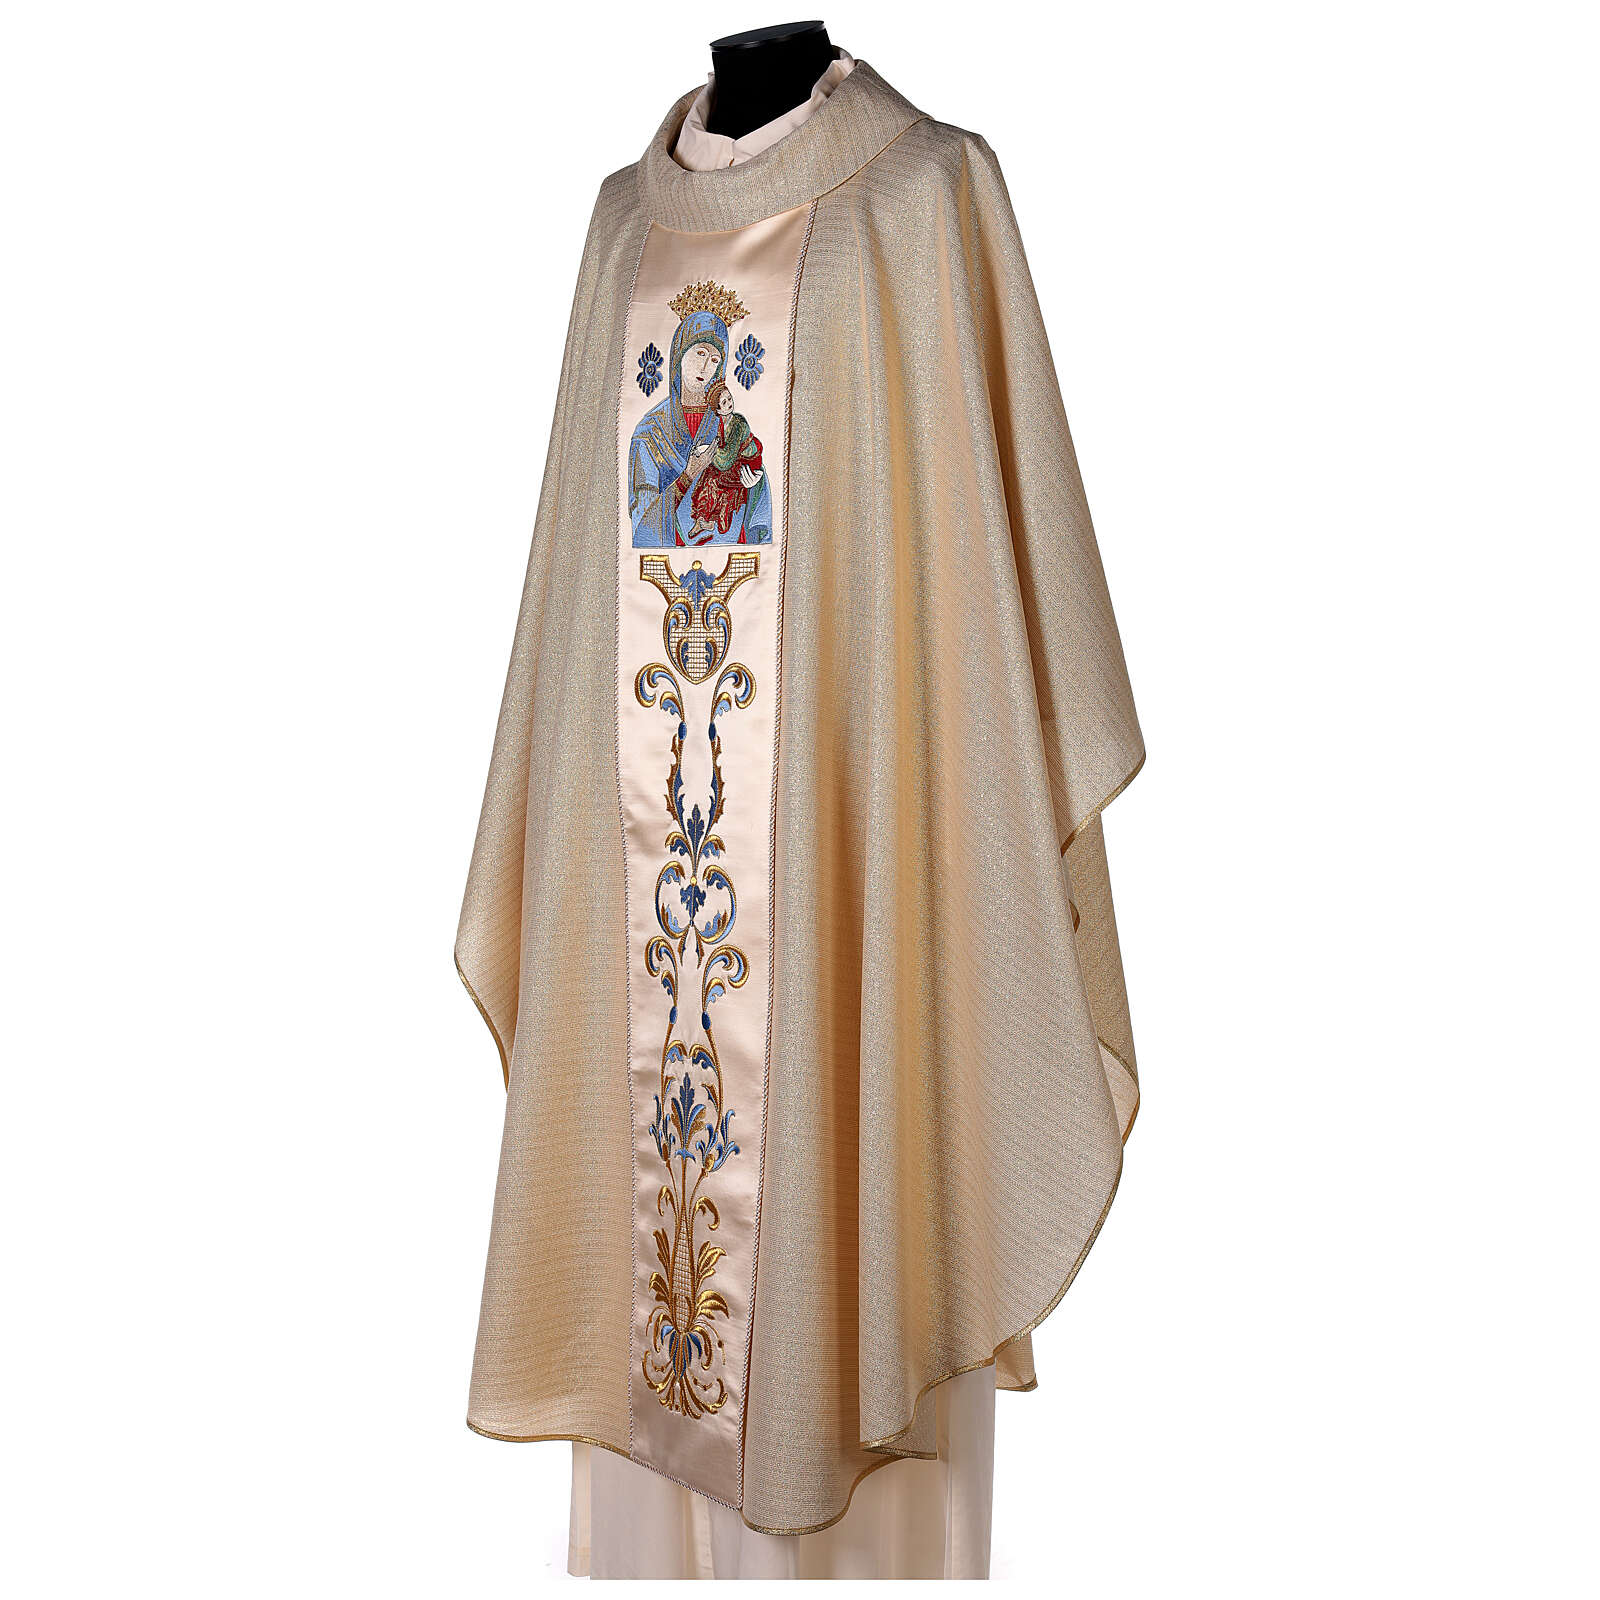 White Marian Chasuble in wool and lurex, with double twisted yarn 4